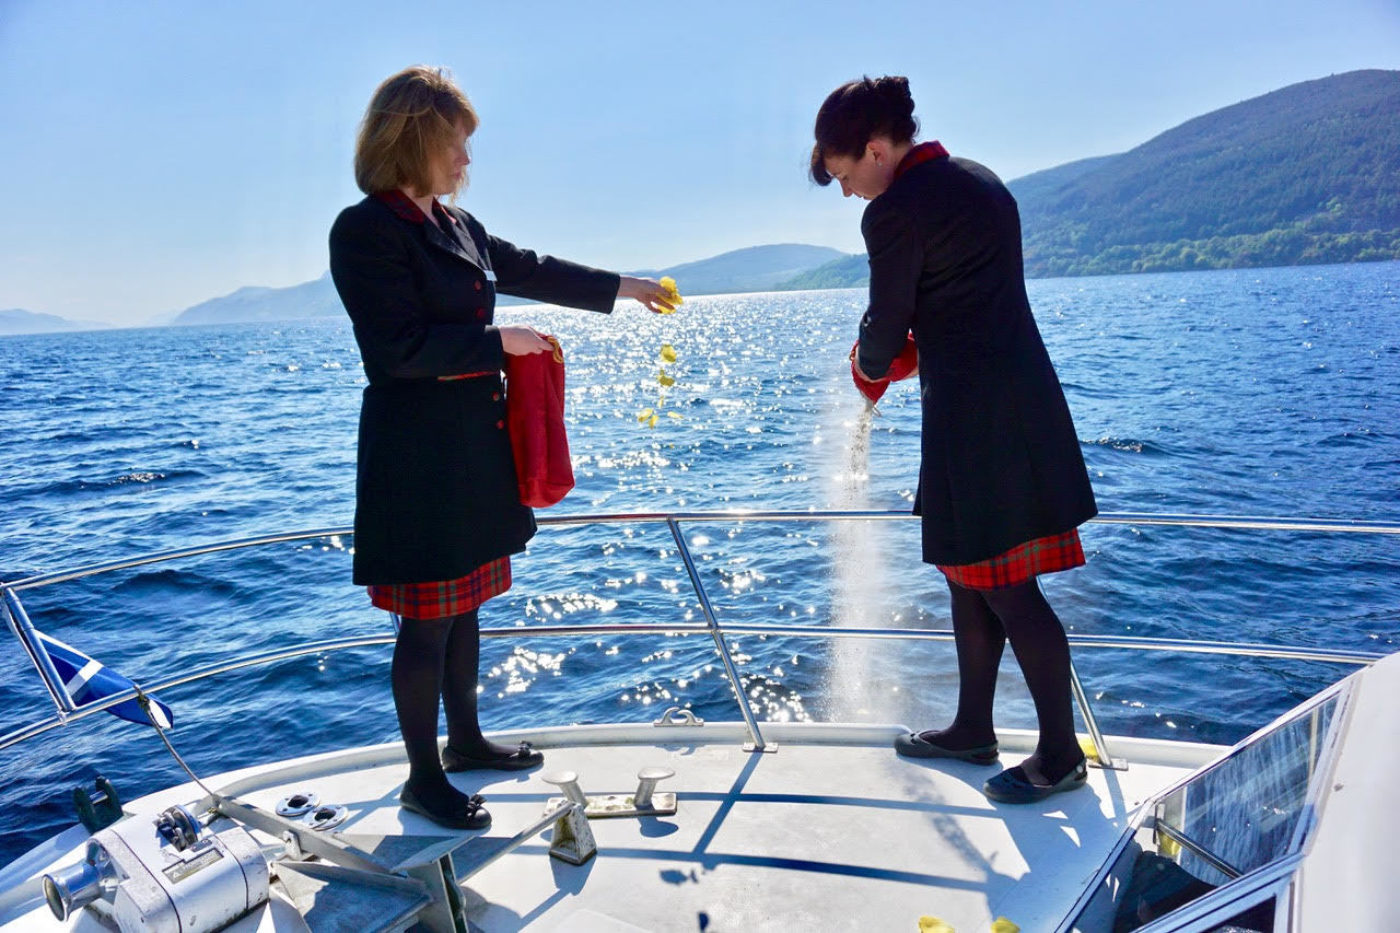 Our Funeral Directors Vicki Fraser (left) and Sarah Maclean (right) scattered the ashes of American Alan Heaton on the shores of Loch Ness, fulfilling the final wishes of the lawyer who died 30 years ago.